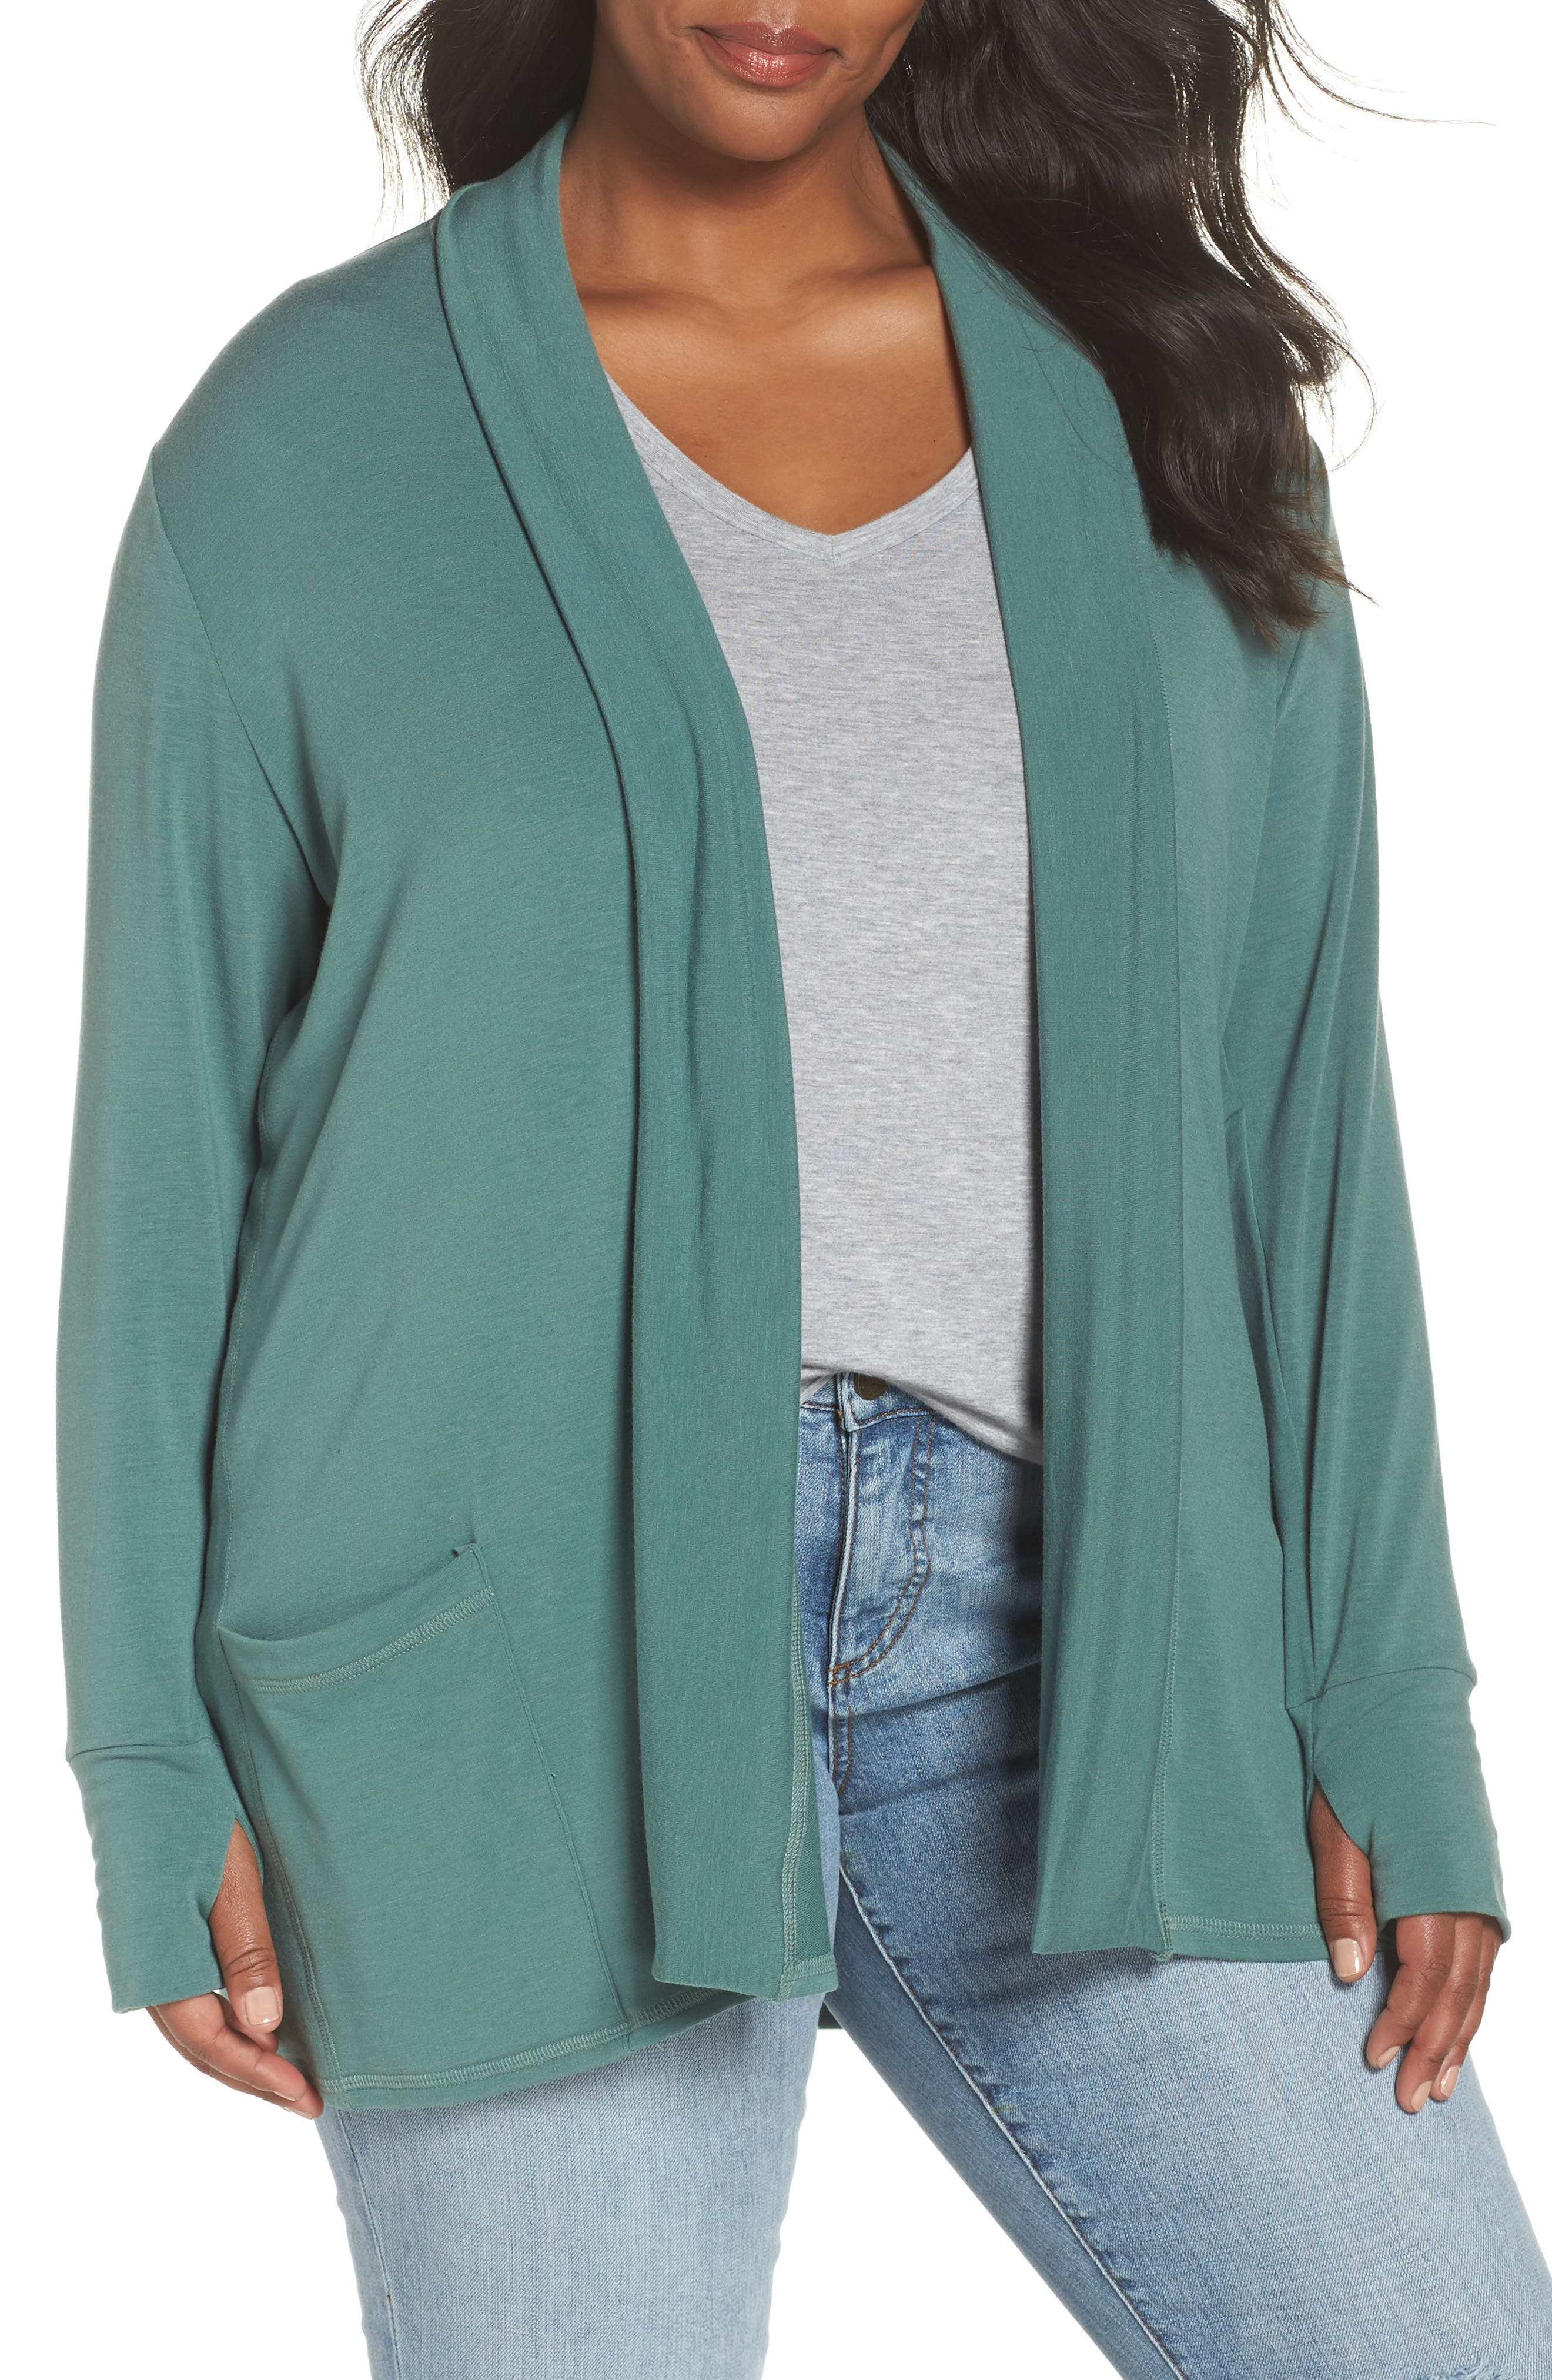 Off-Duty French Terry Cardigan,                             Main thumbnail 1, color,                             Green Duck